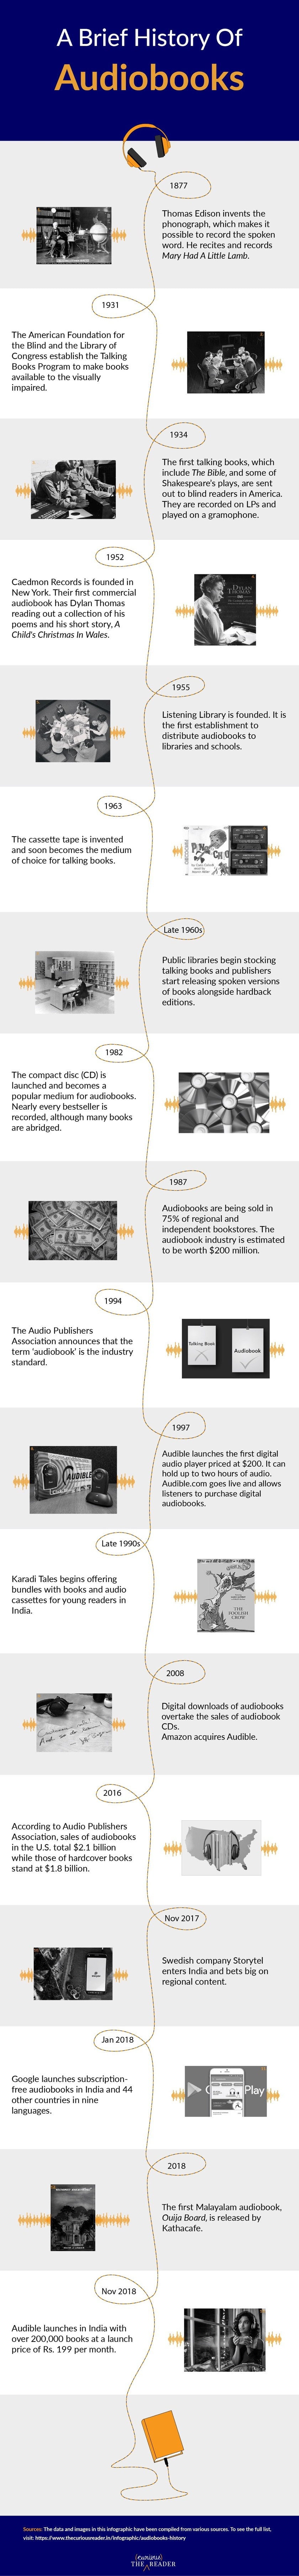 A brief history of audiobooks - full infographic